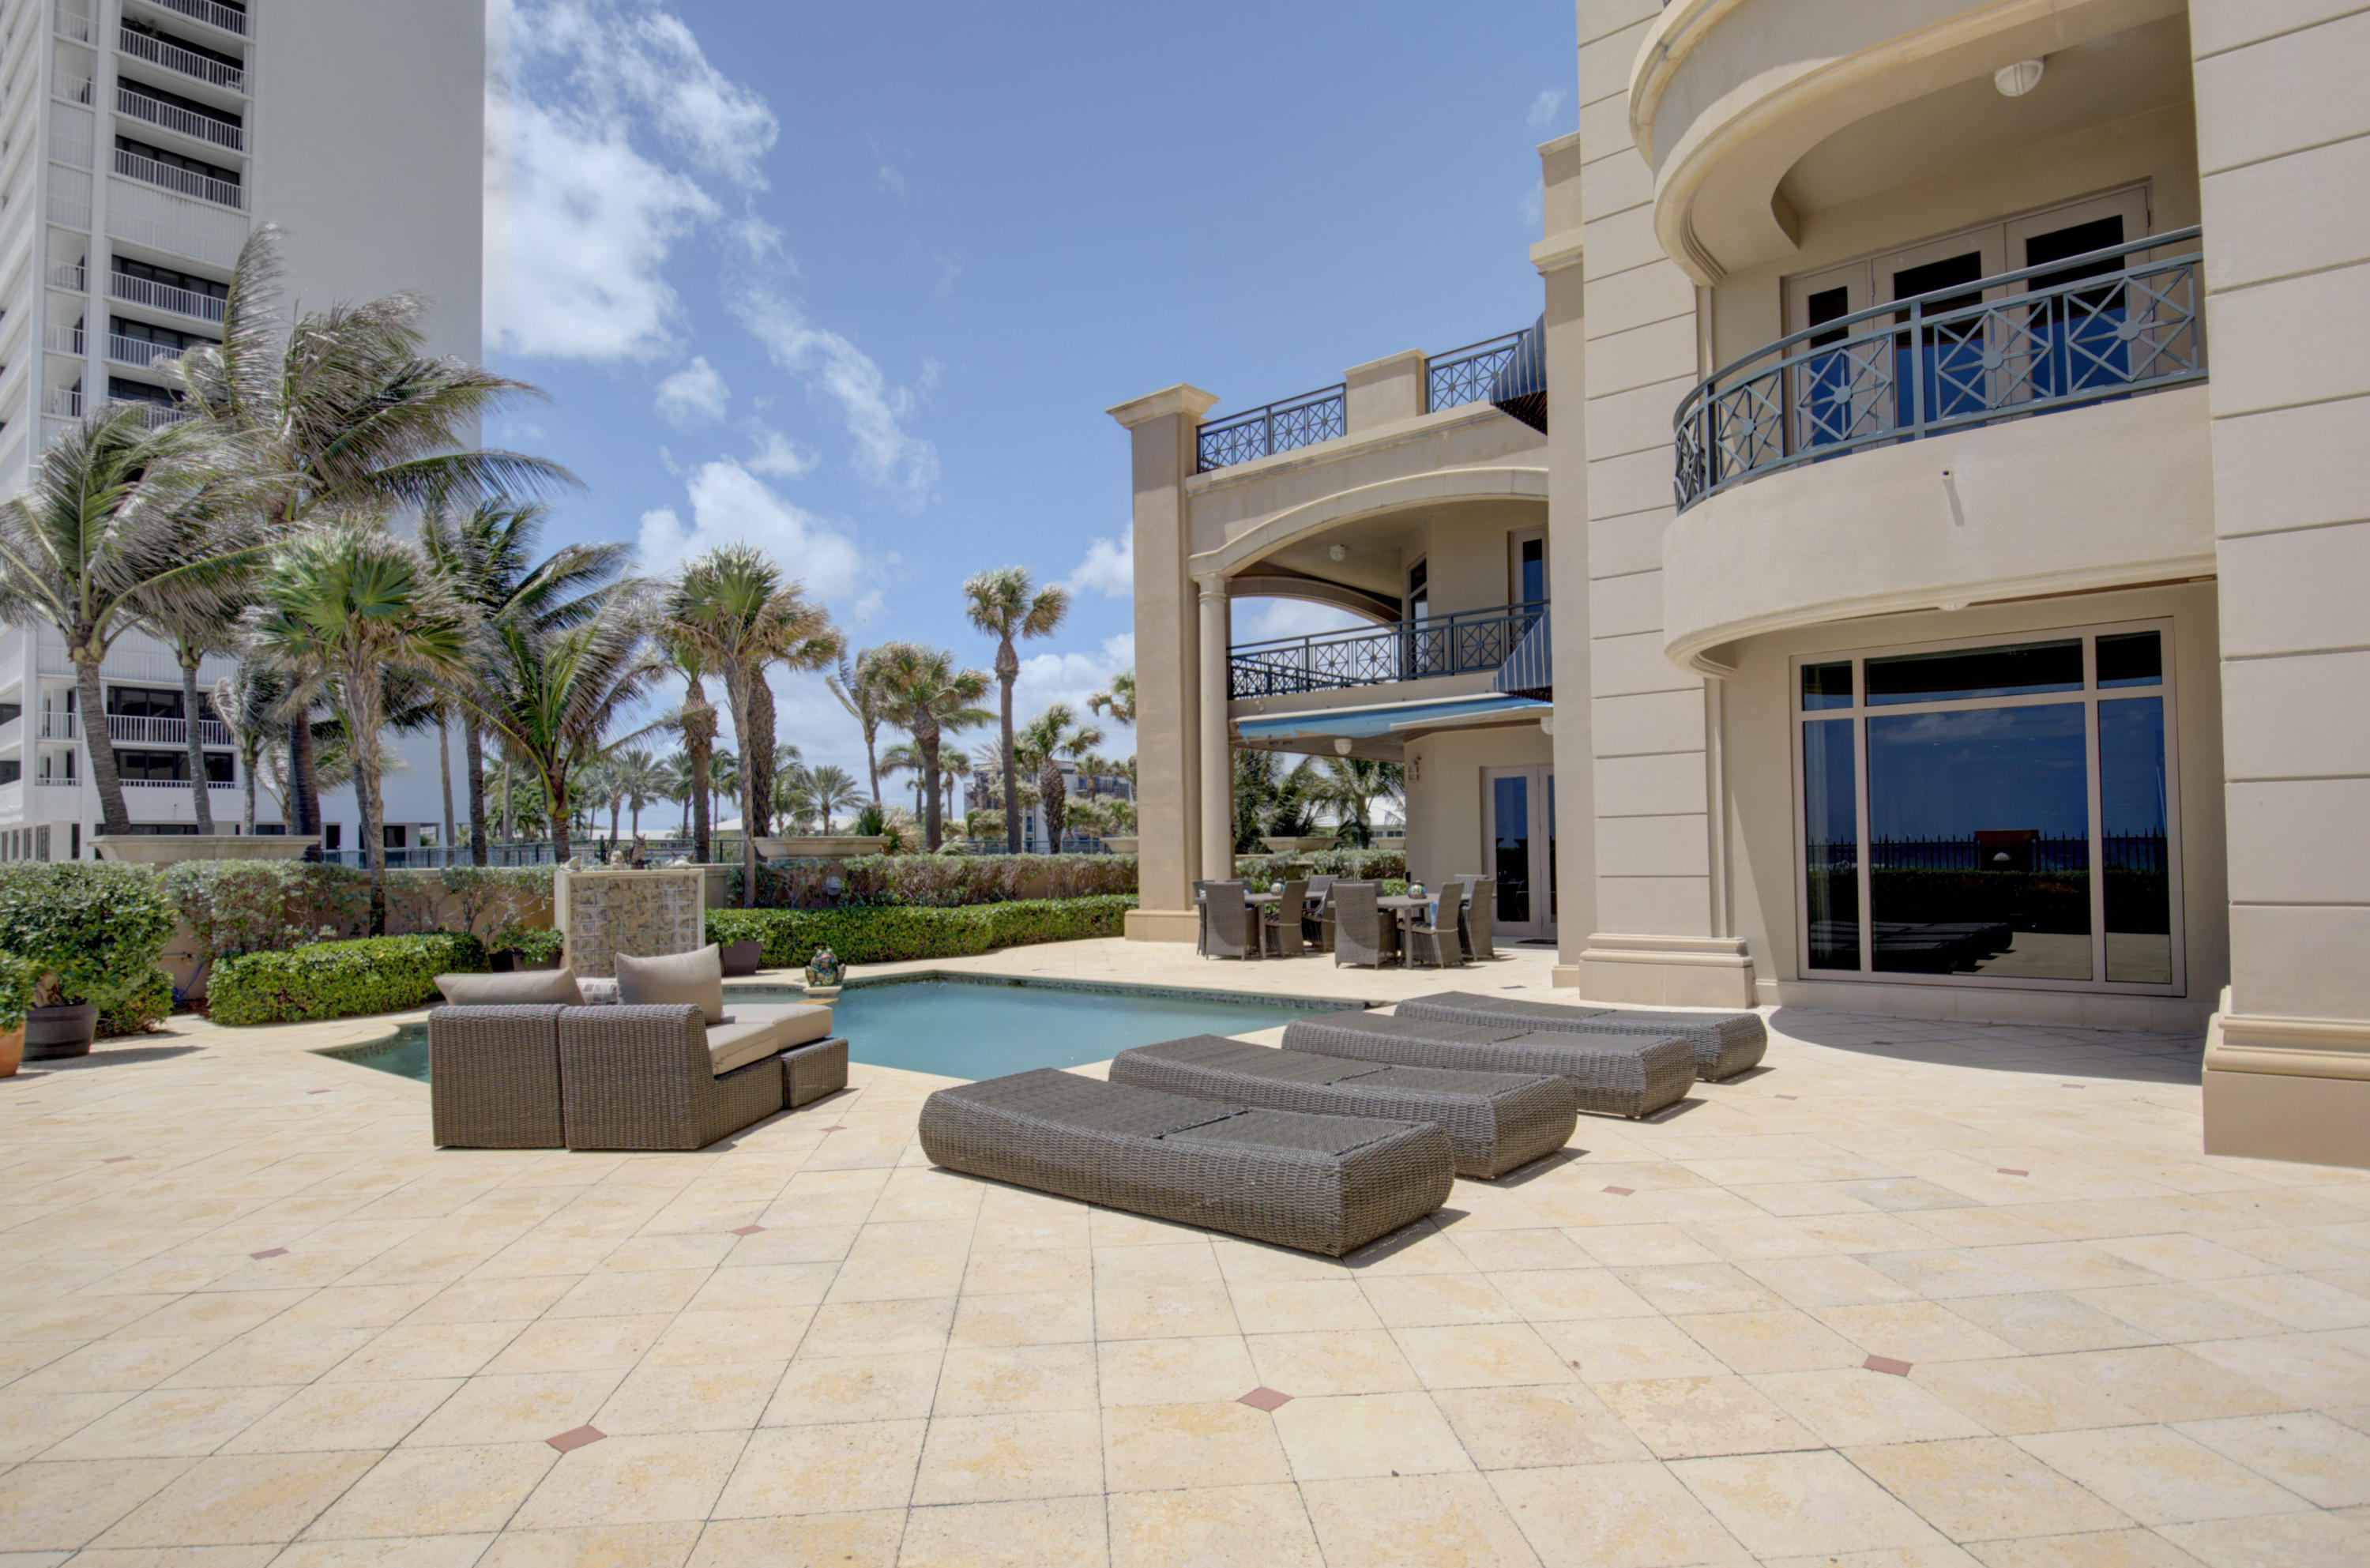 large private patio